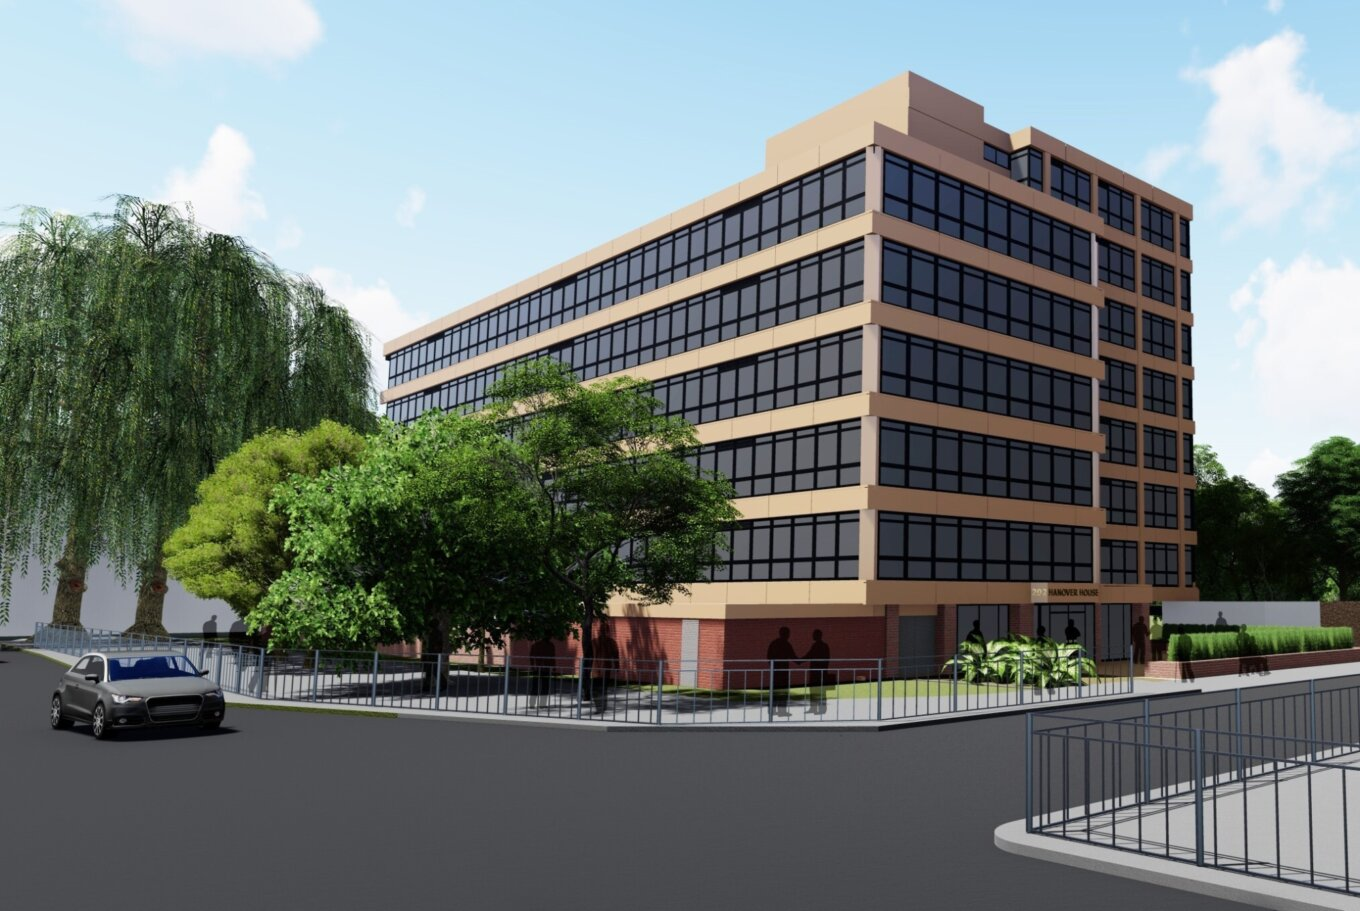 Hanover House Planning Consent Granted